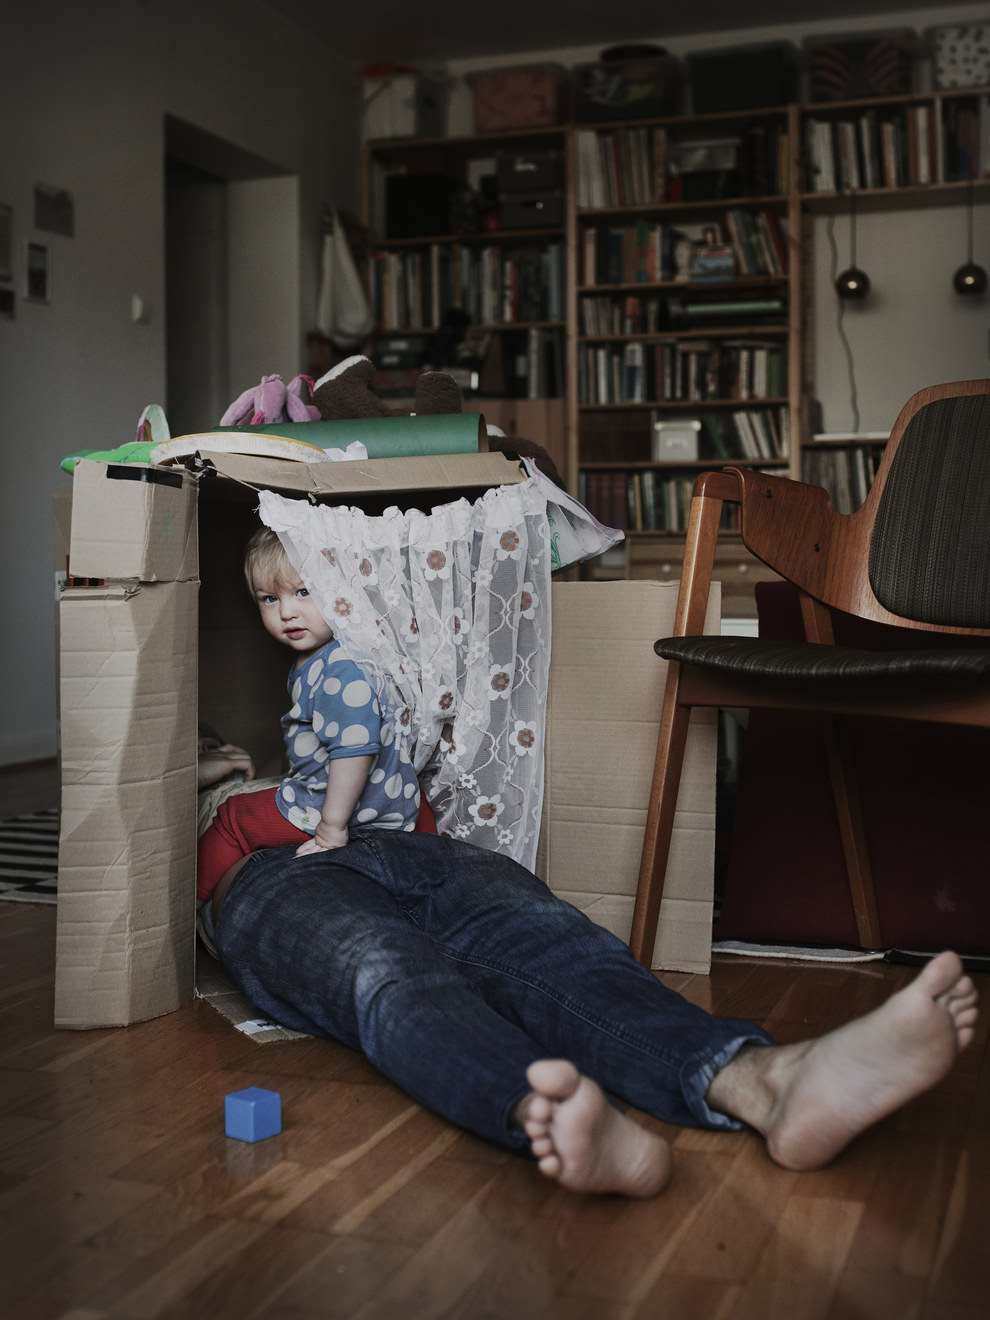 Swedish Dads: Johan Bävman Documents Stay-At-Home Dads And Their Kids #inspiration #photography